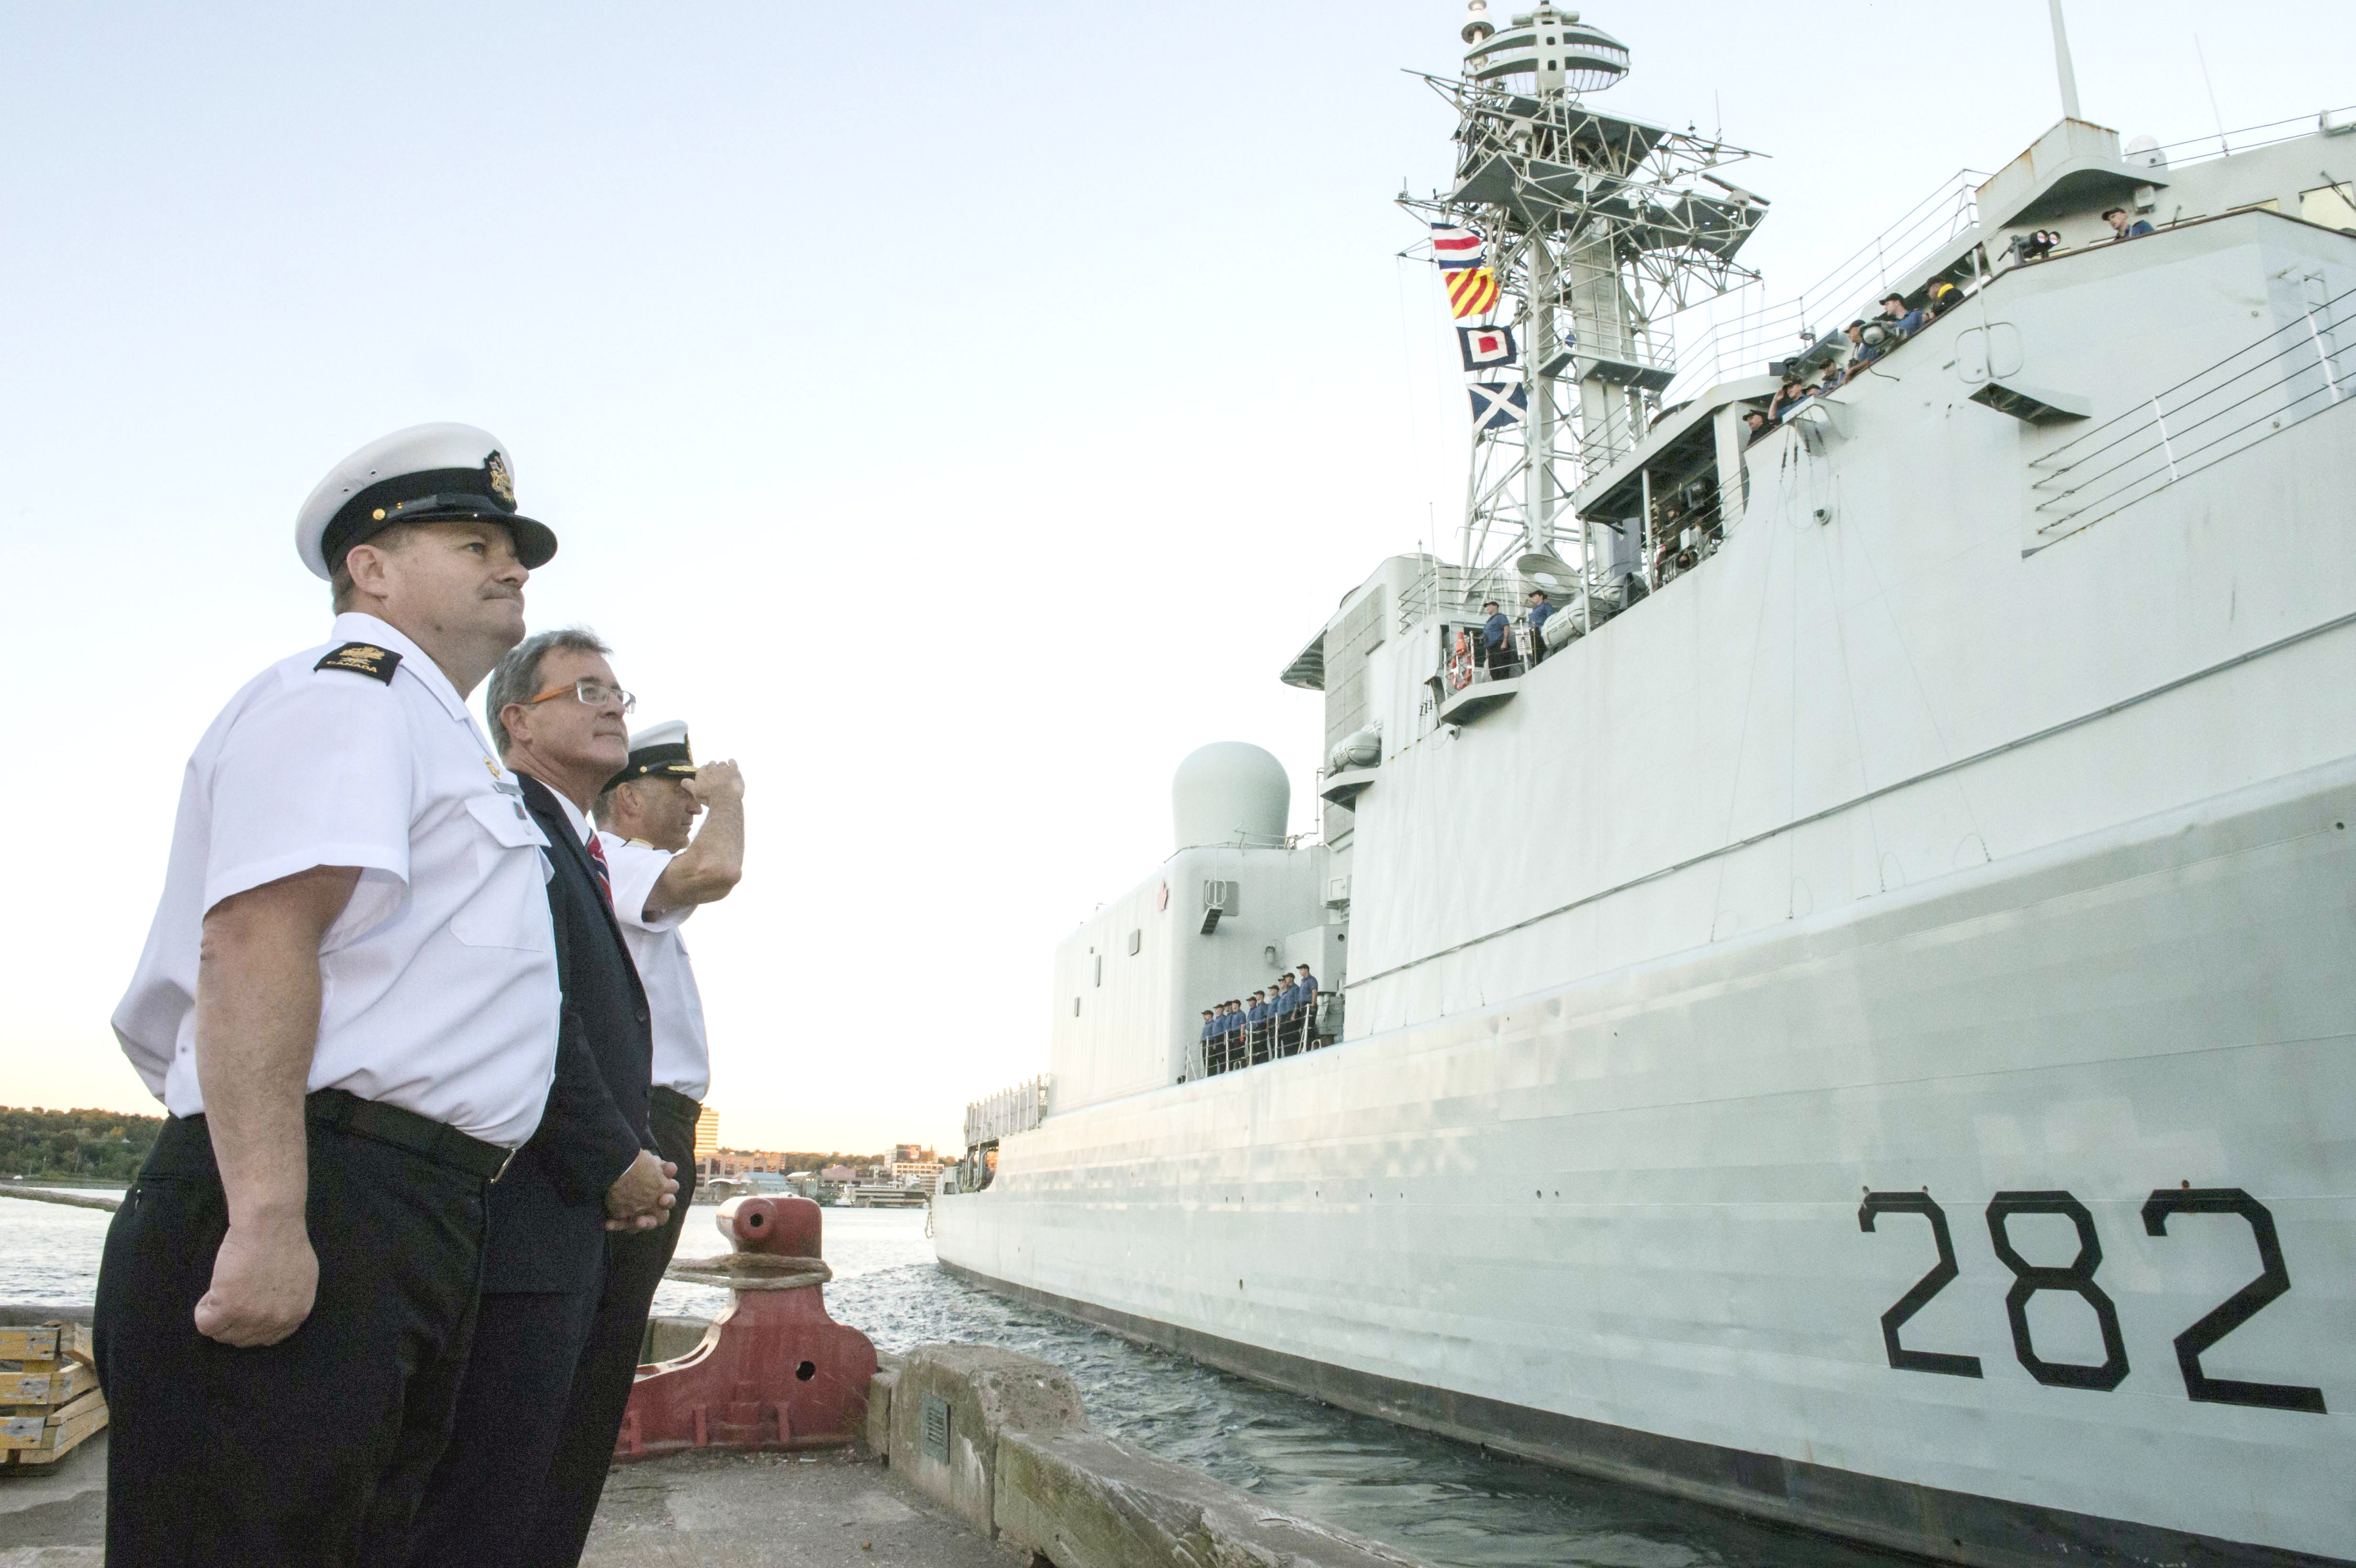 HMCS Athabaskan departs for Operation Caribbe